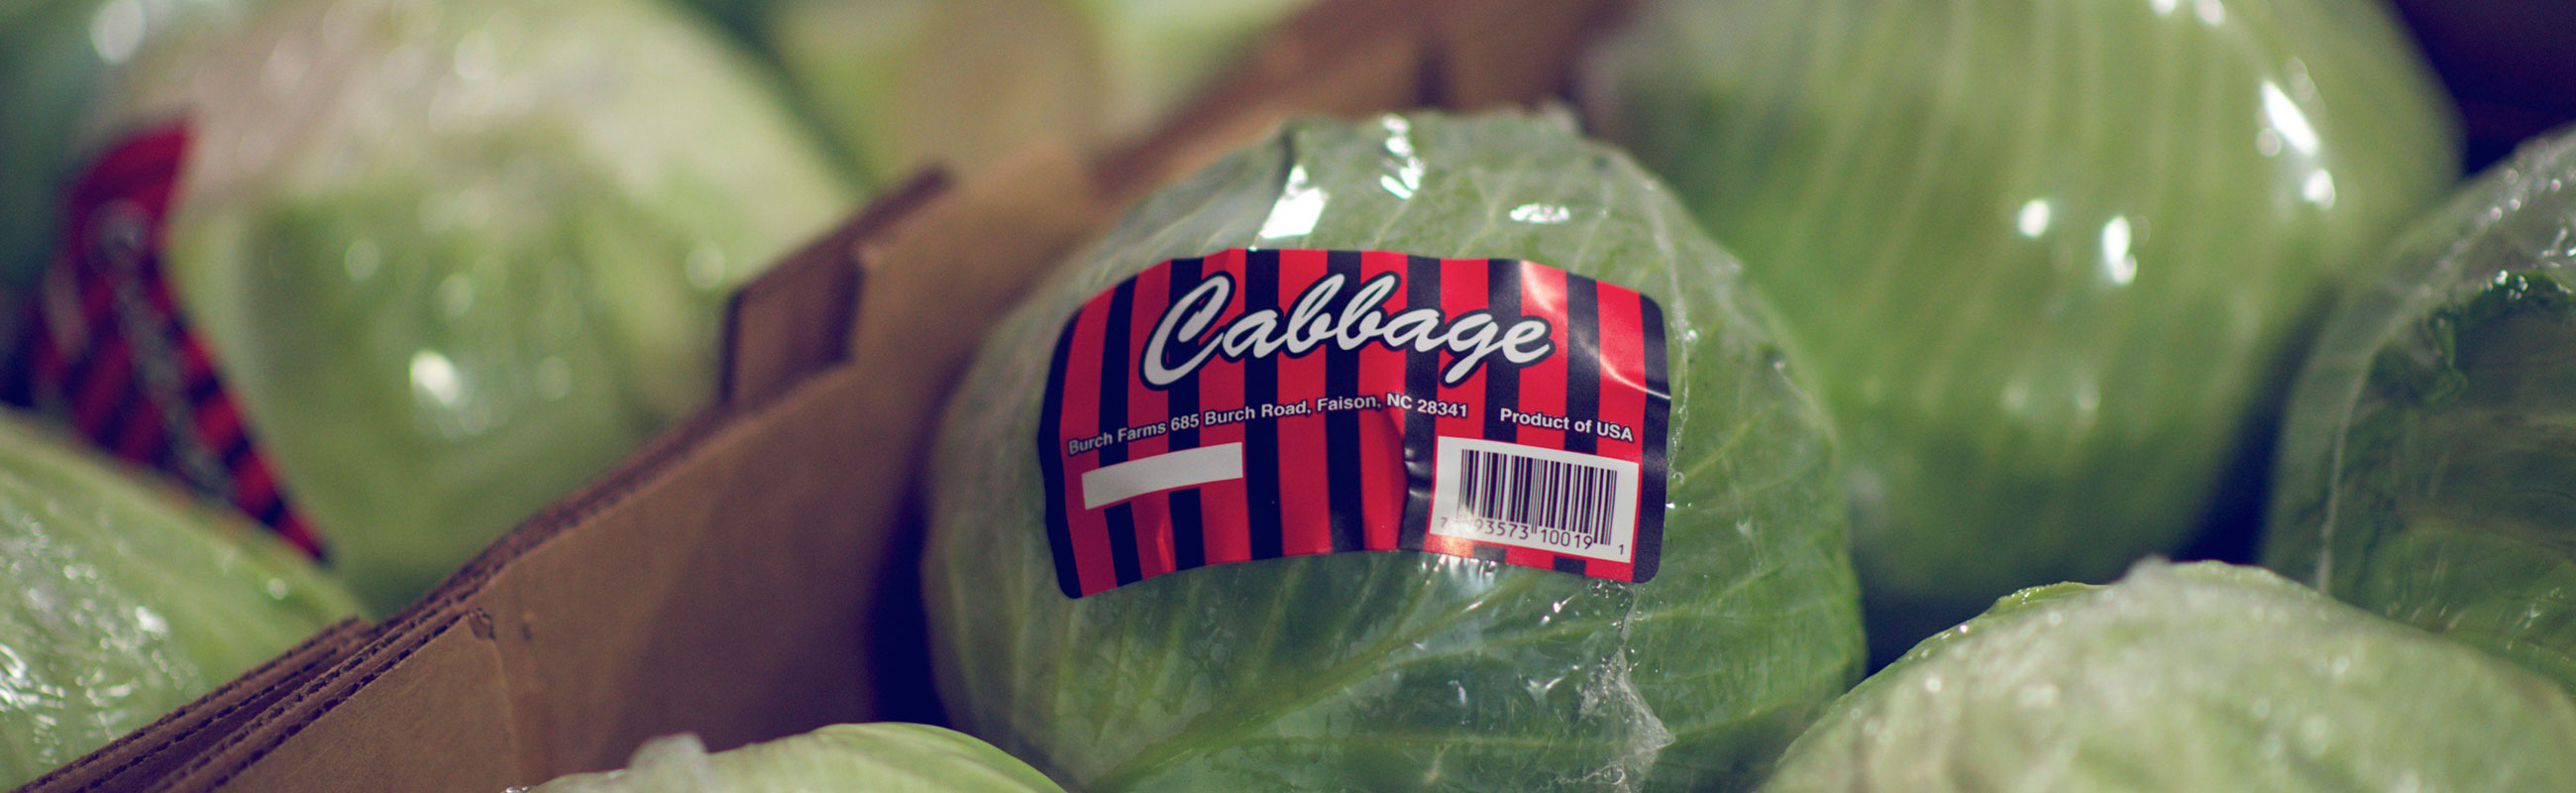 Produce labels farming industry packaging